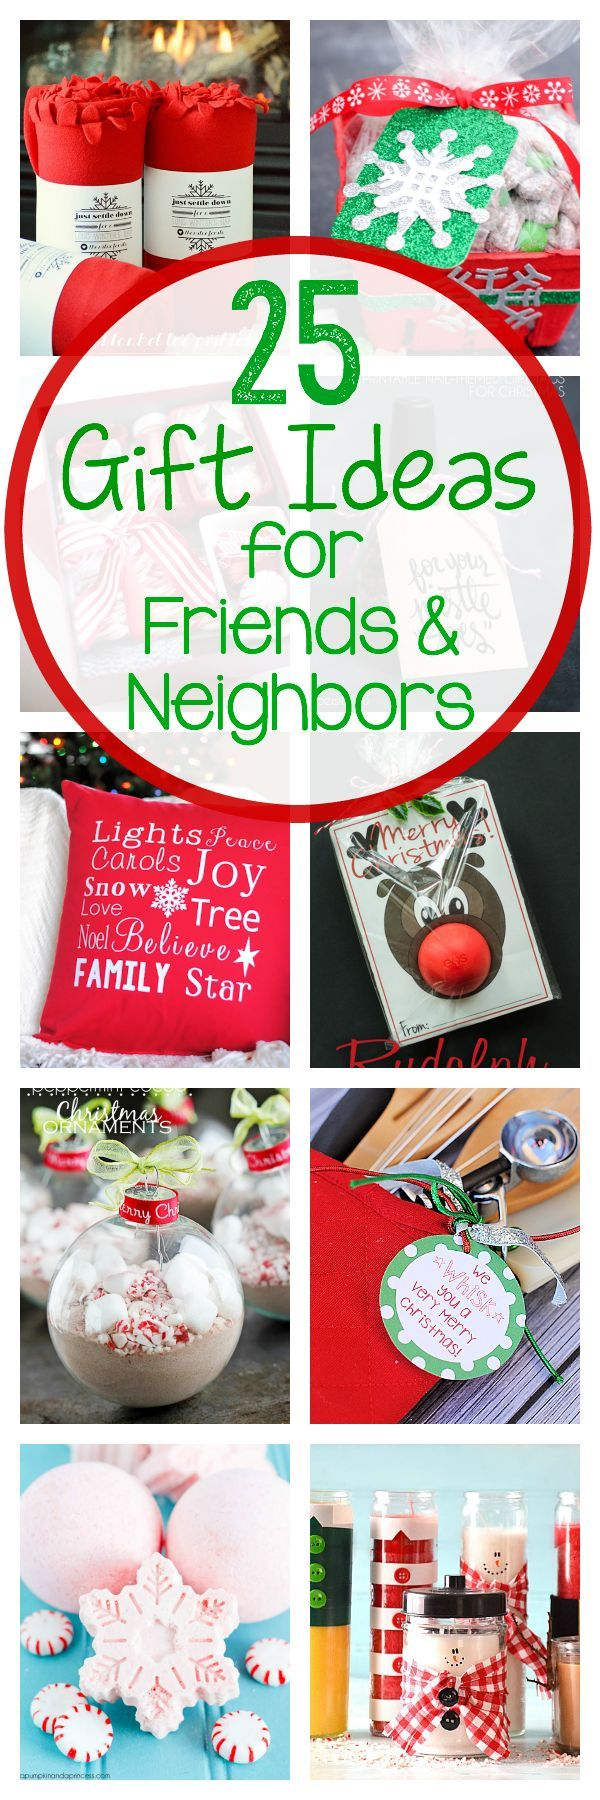 Best 25 Neighbor Christmas Gifts Ideas On Pinterest Fun: easy gift ideas for friends